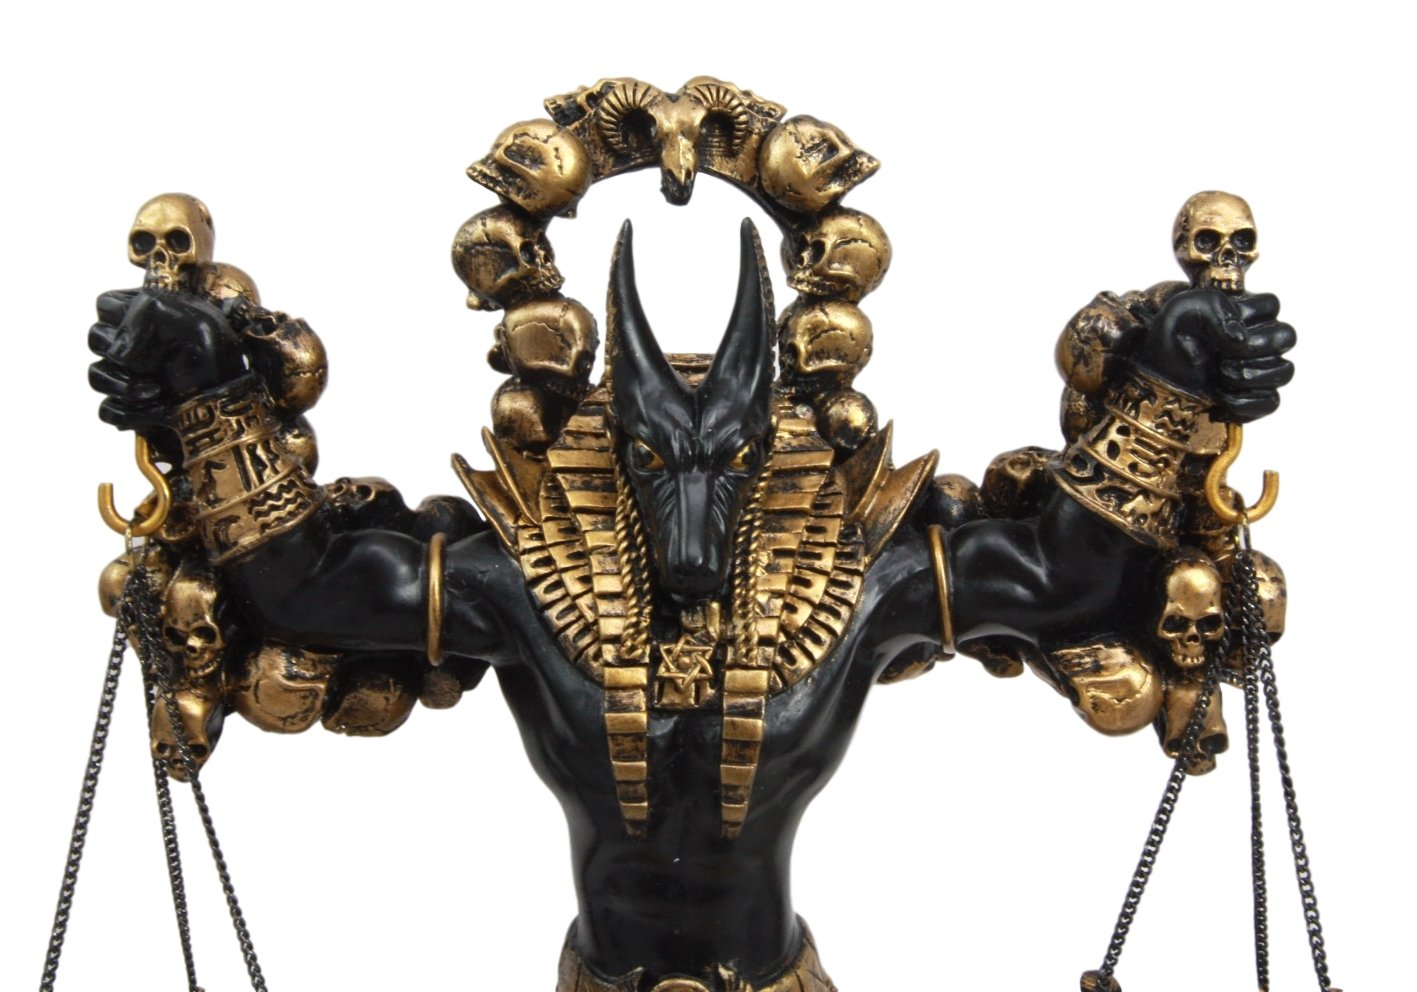 Ebros Ancient Egyptian God Anubis Statue by Ankh Altar Weighing The Heart Against Ostrich Feather Figurine 9 Tall